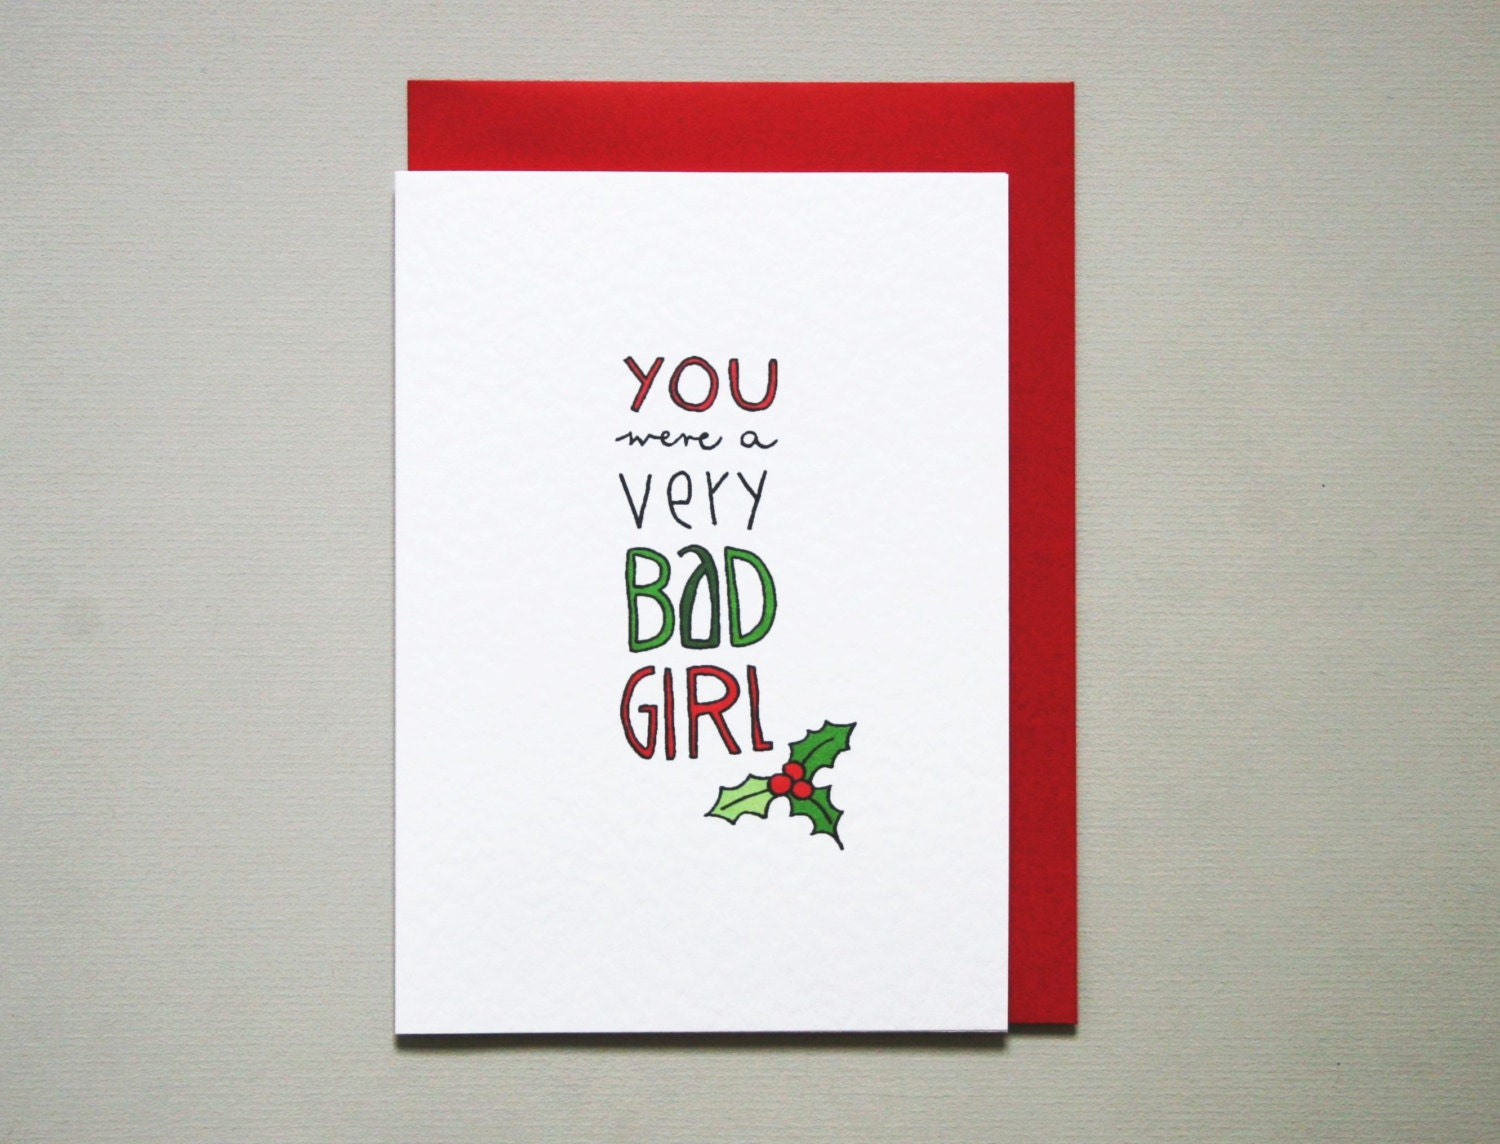 Ordinary Card Making Ideas For Girlfriend Part - 7: ?zoom